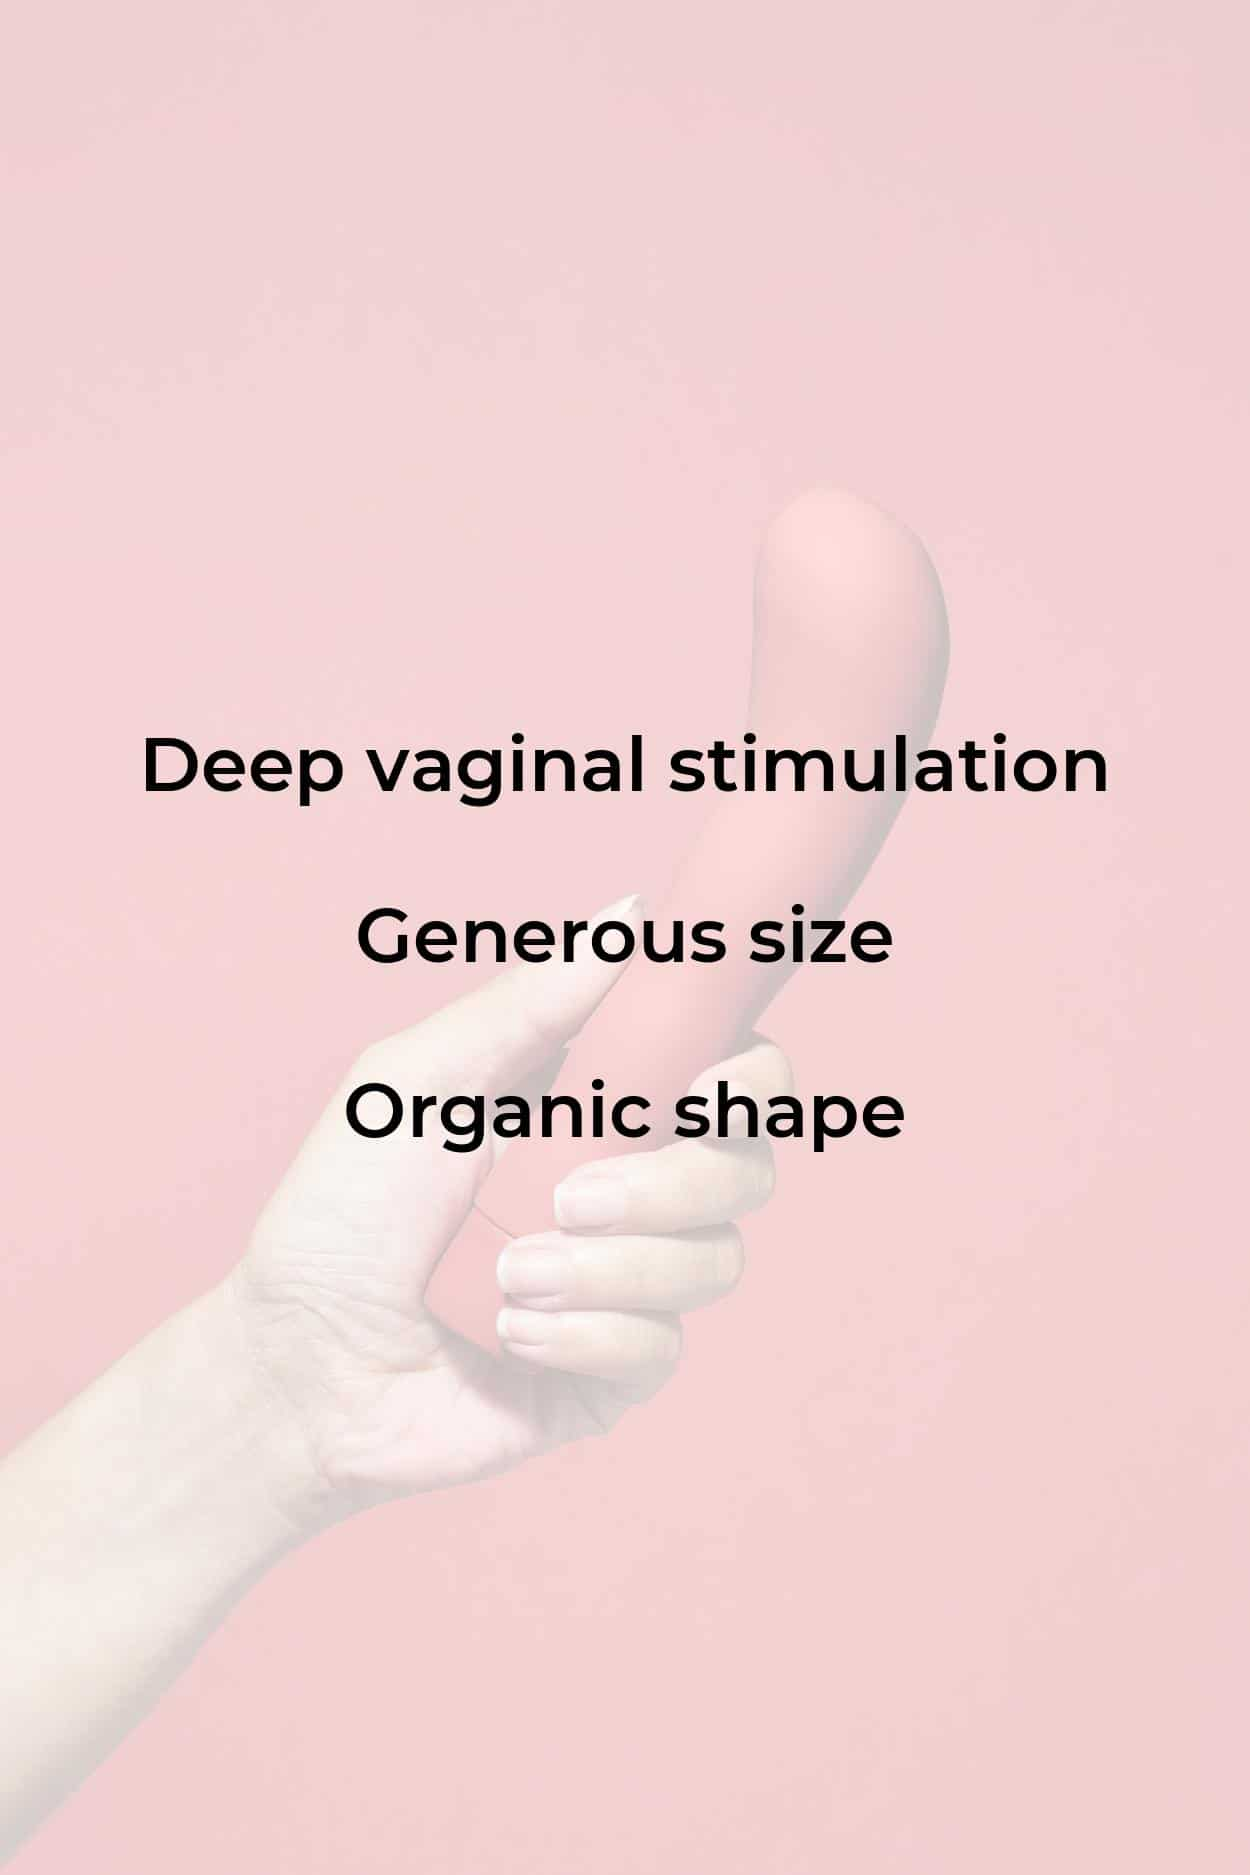 The Romantic, a vibrator for deeper vaginal stimulation with a long body